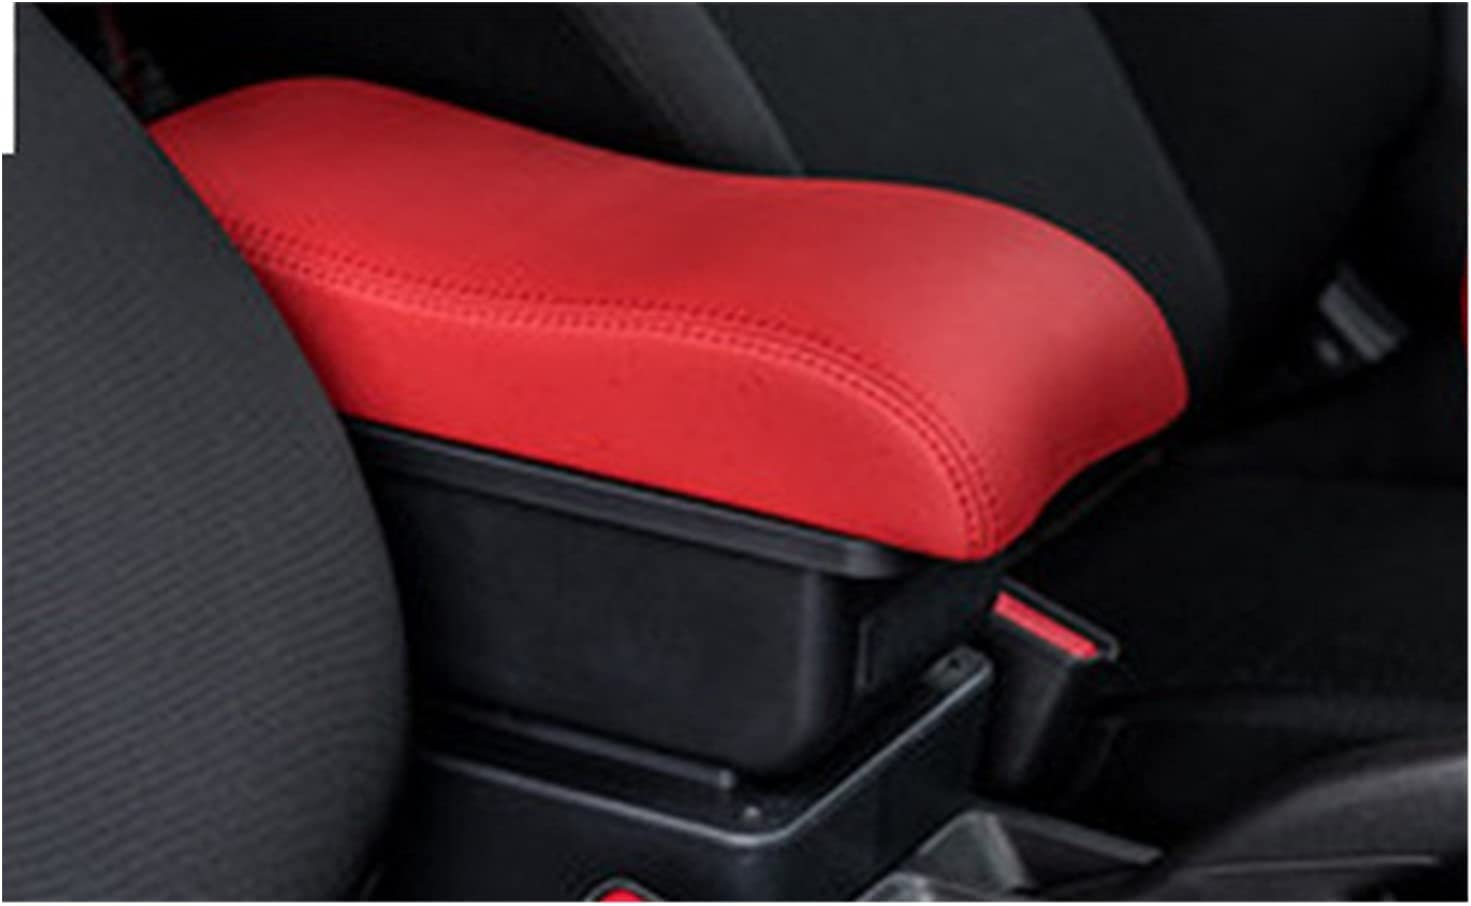 Automotive Armrests for 9N 9N3 Online limited product 02-09 Layer 10- Car Dual Armrest New popularity